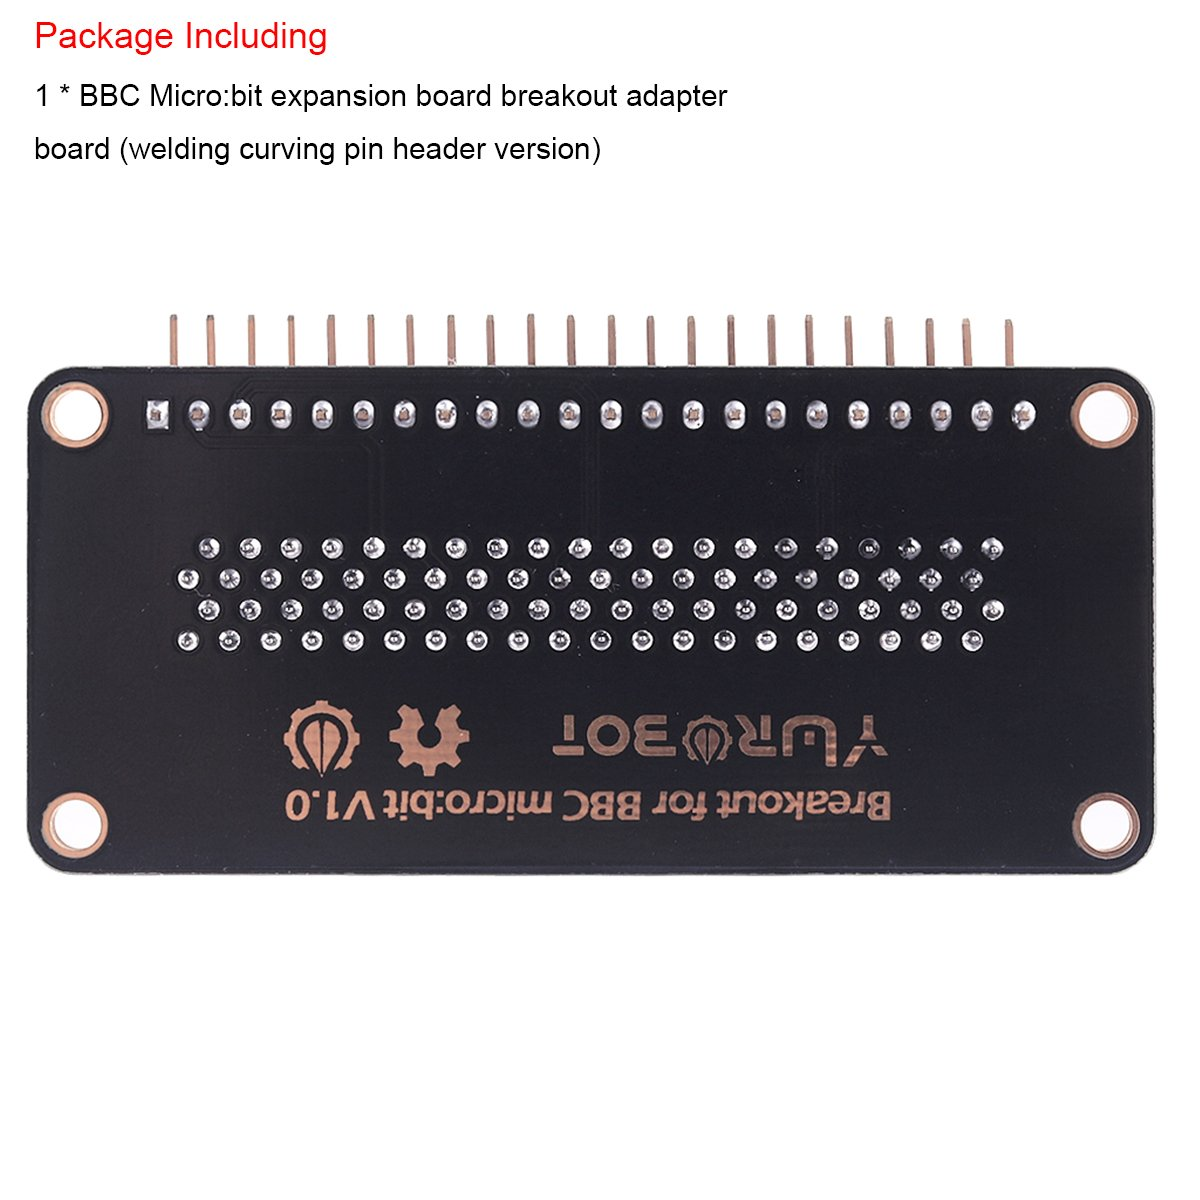 Makerfocus Bbc Micro Bit Expansion Board Breakout Machine Circuit Buy Boardwelding Adapter Convenient To Lead All The Interface With Welding Curving Pin